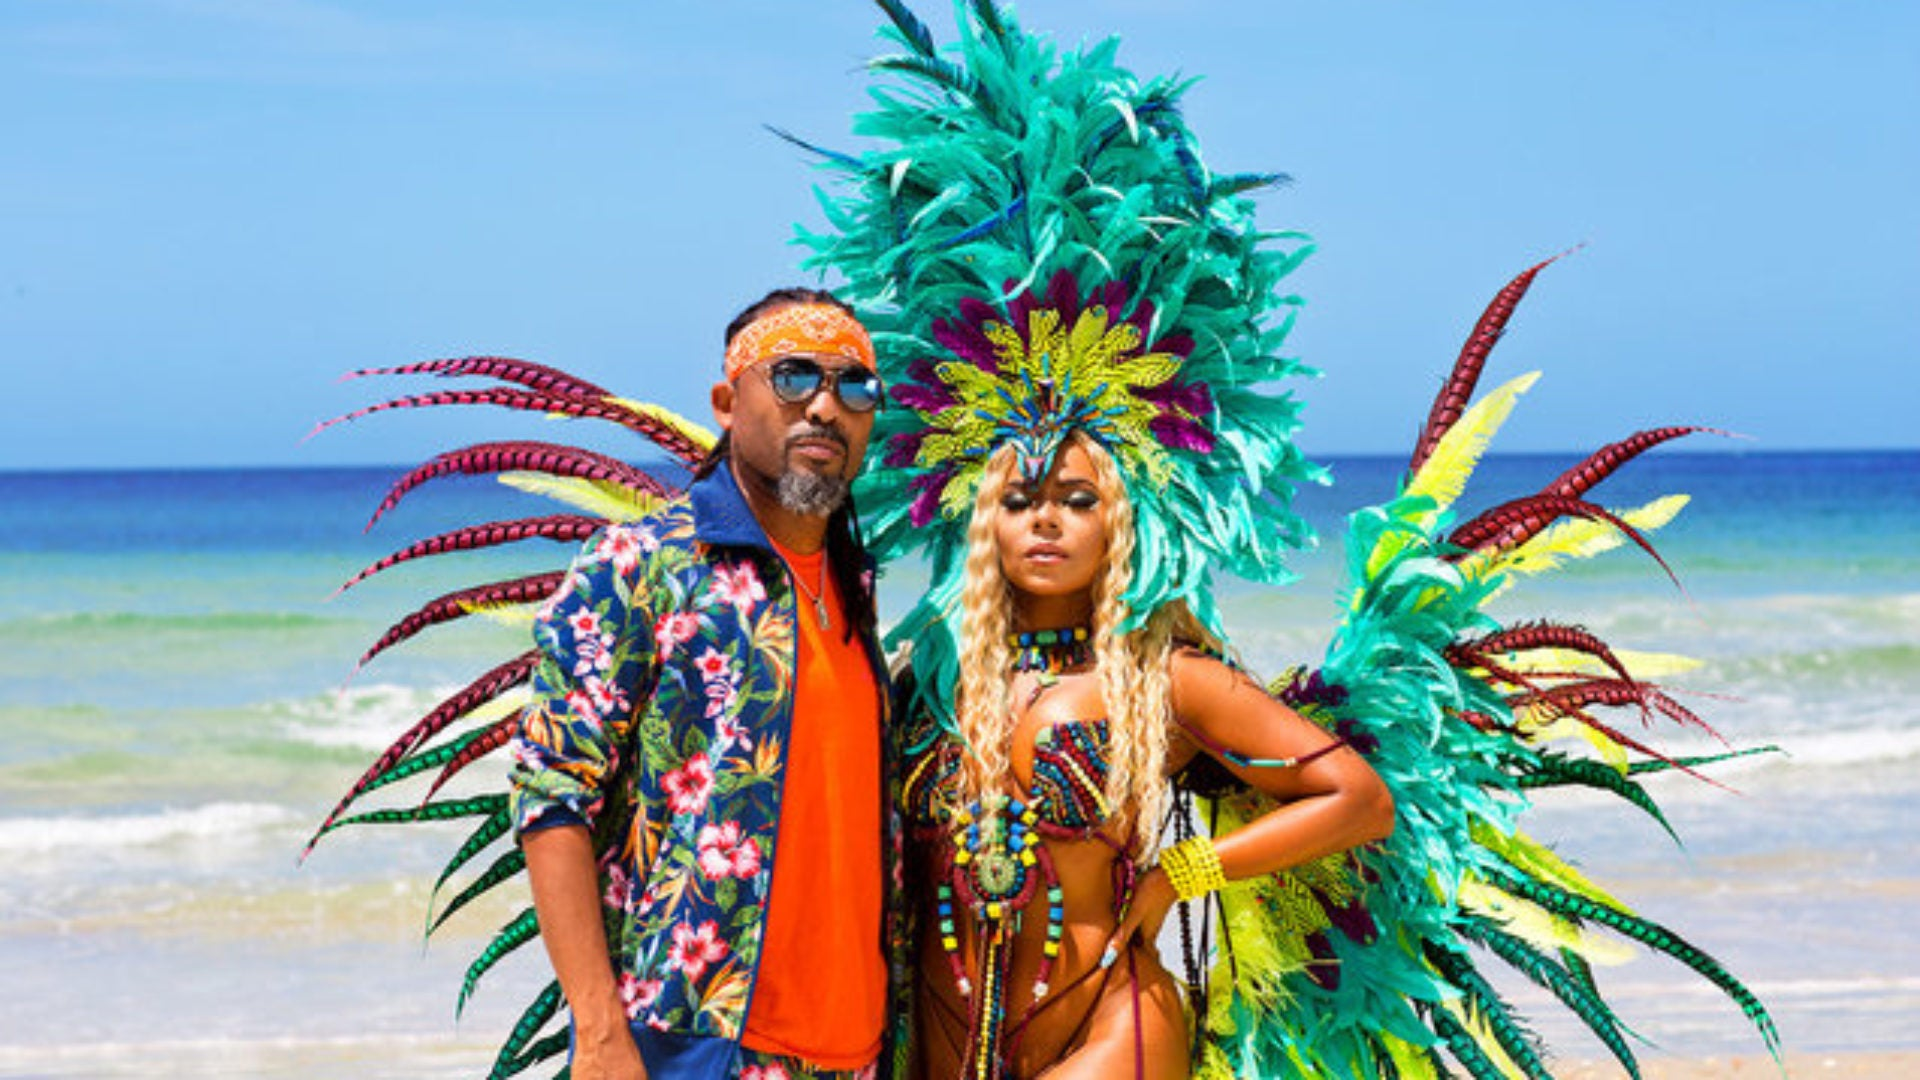 Ashanti Stuns In Carnival-Themed Music Video With Soca King